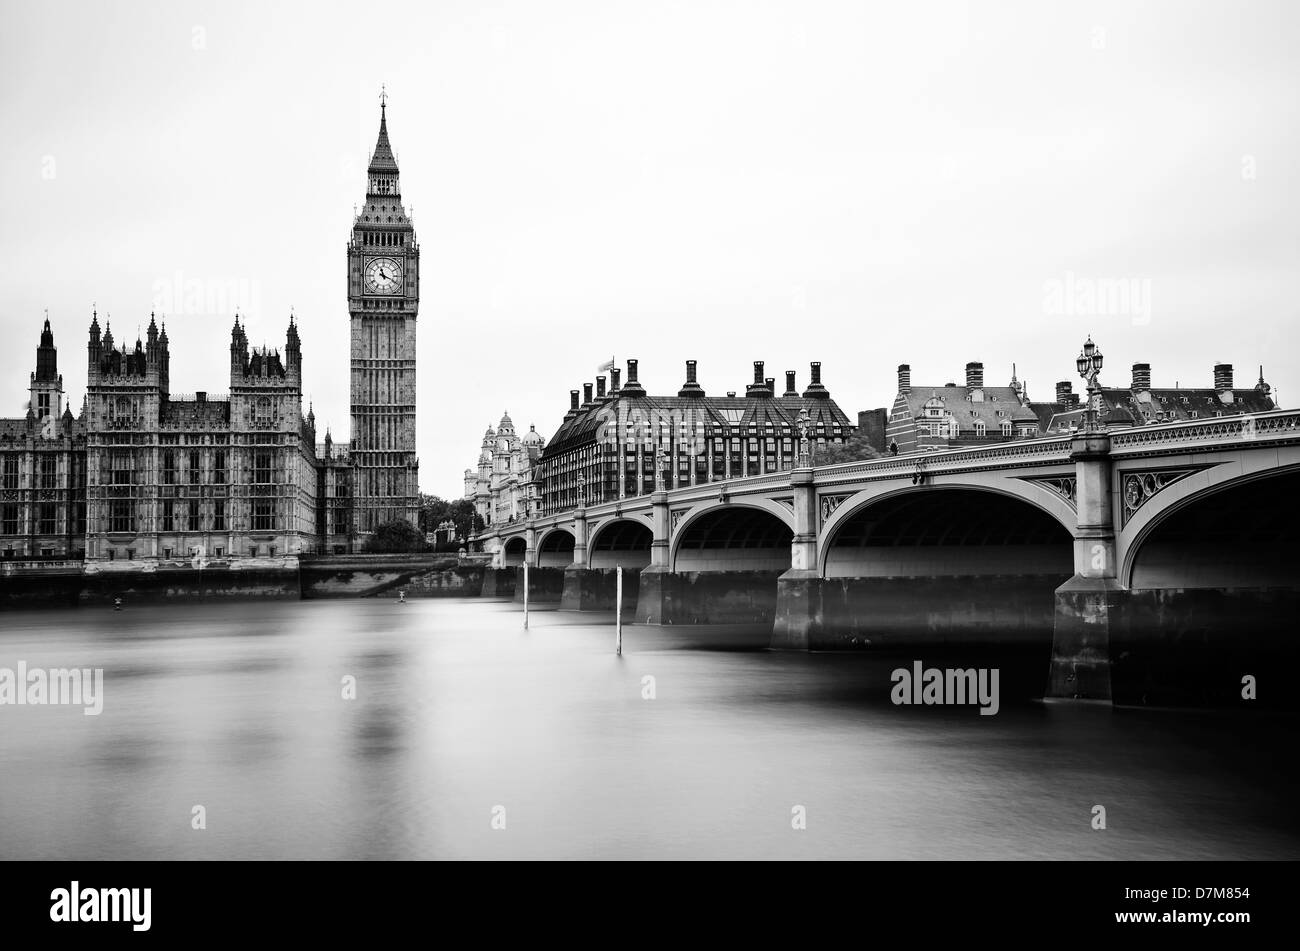 View towards the Palace of Westminster and Westminster Bridge, London, UK - Stock Image